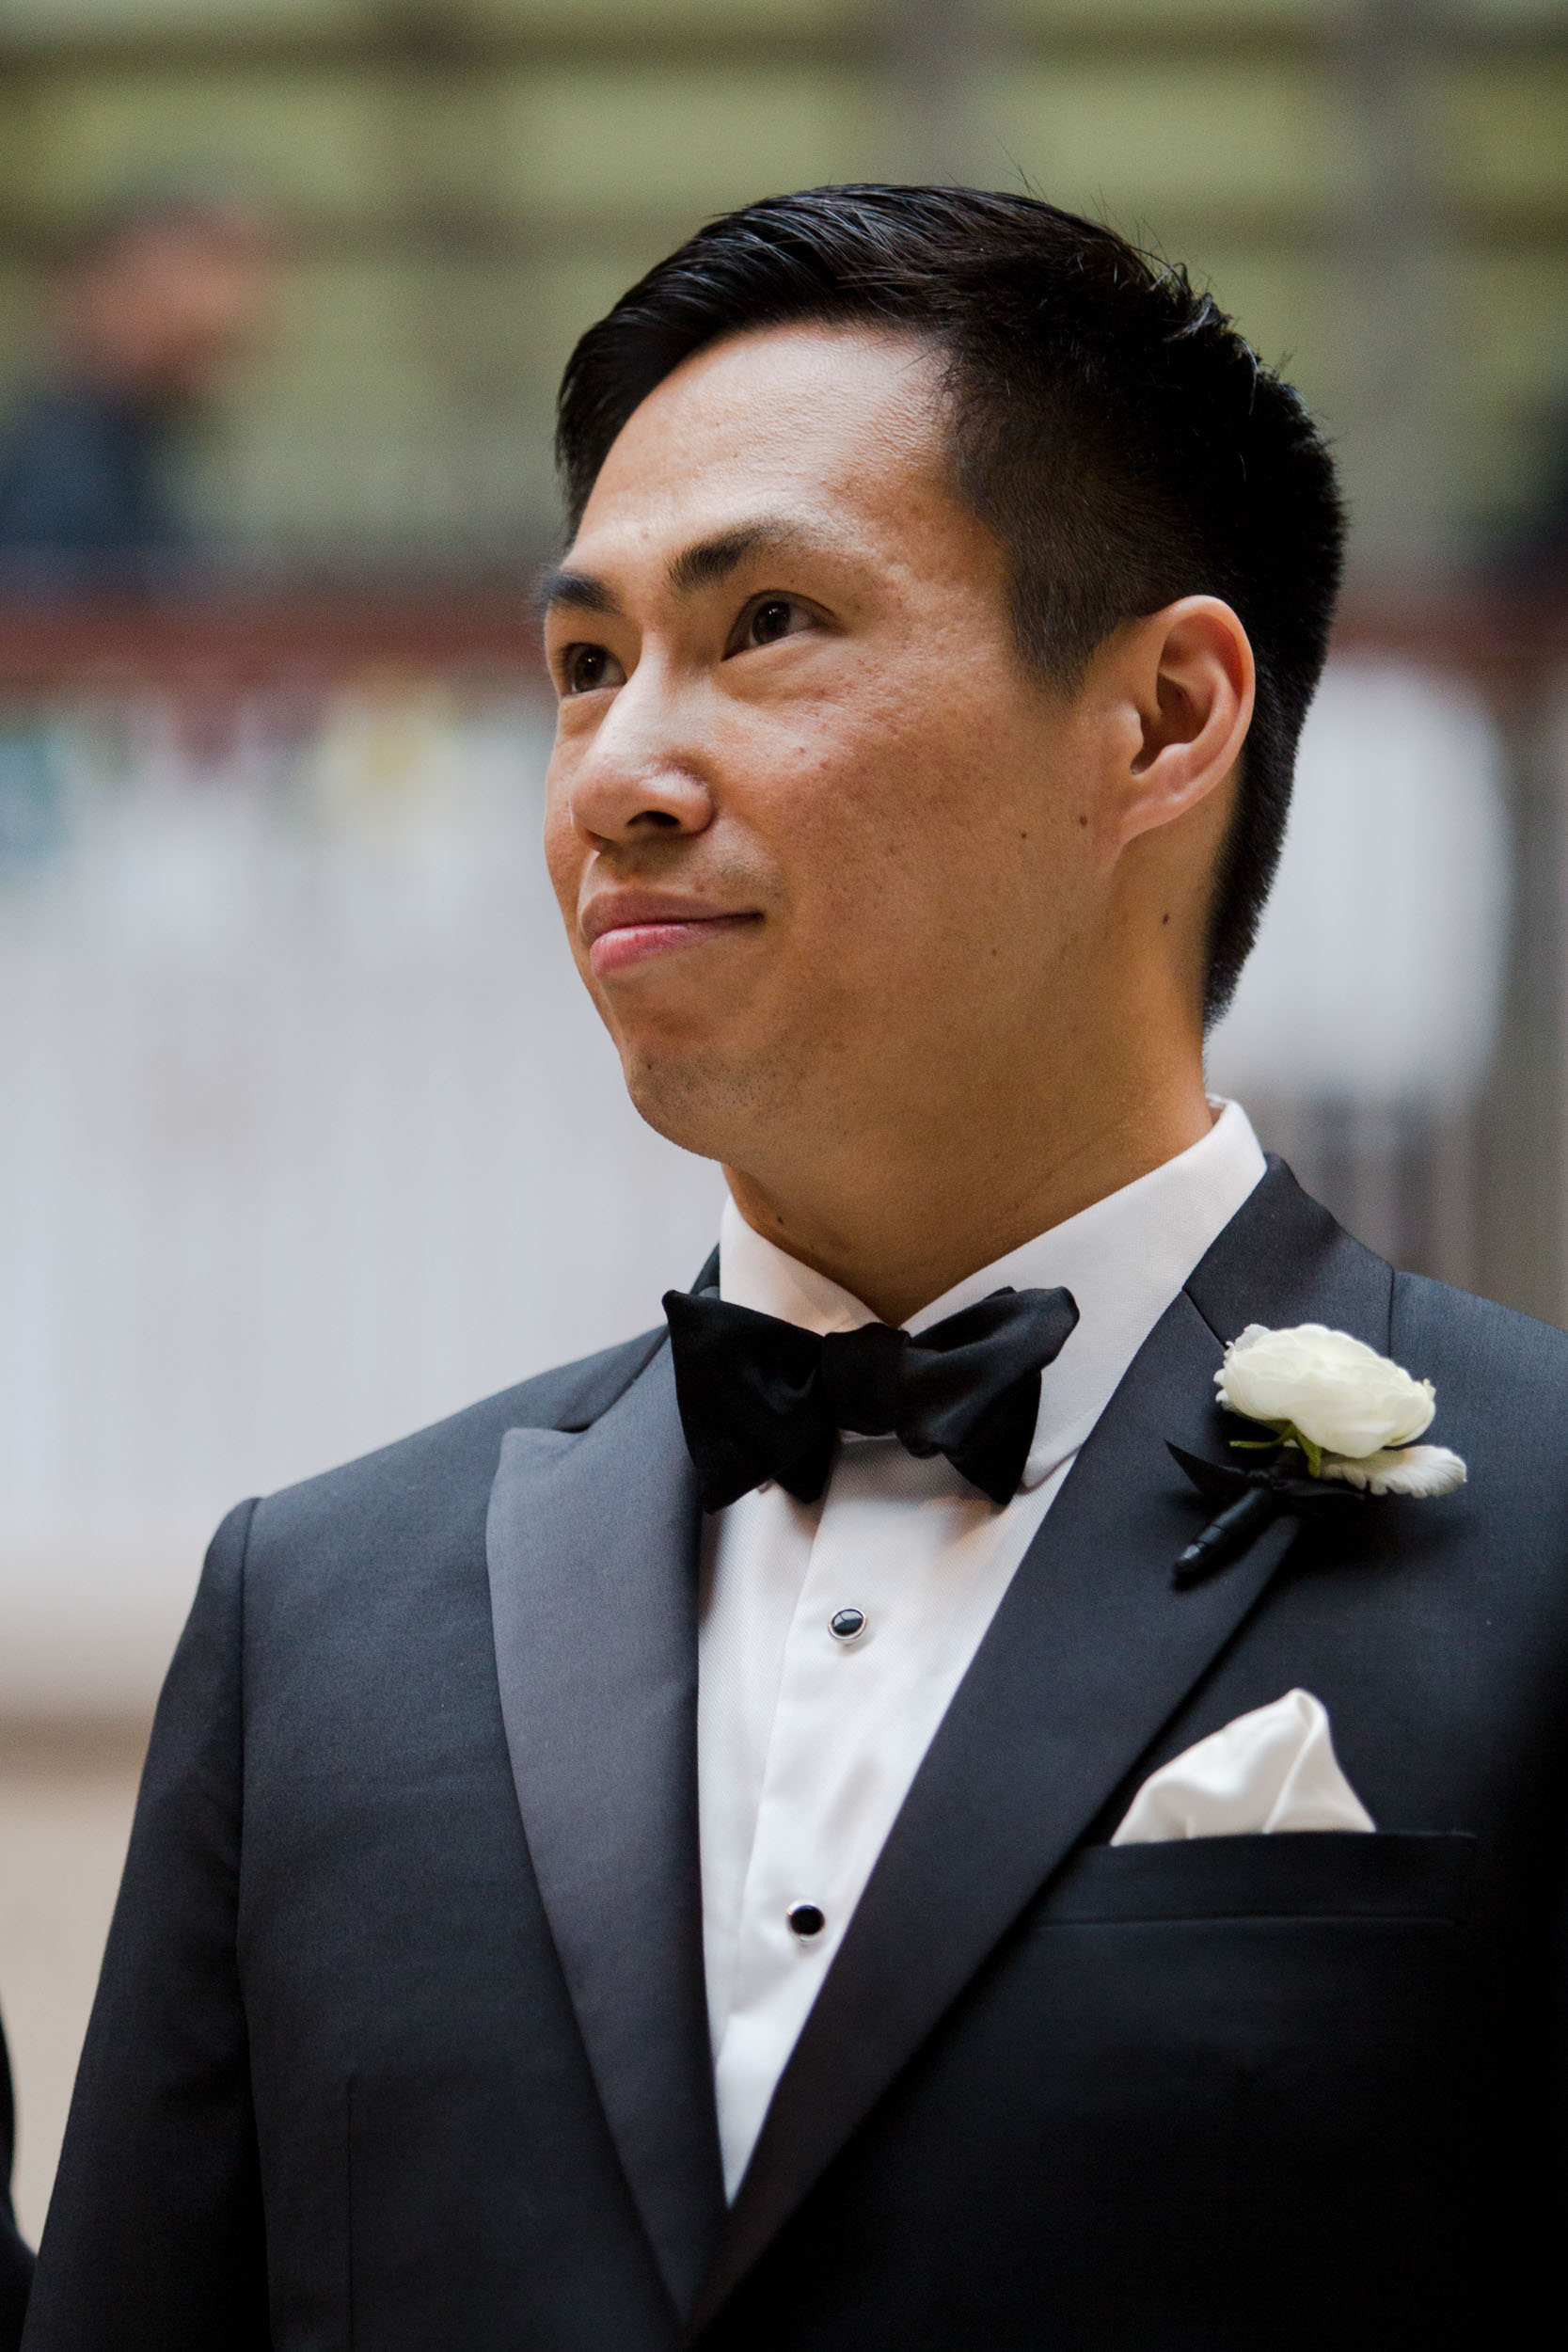 Groom at wedding ceremony on the Grand Staircase Art Institute of Chicago